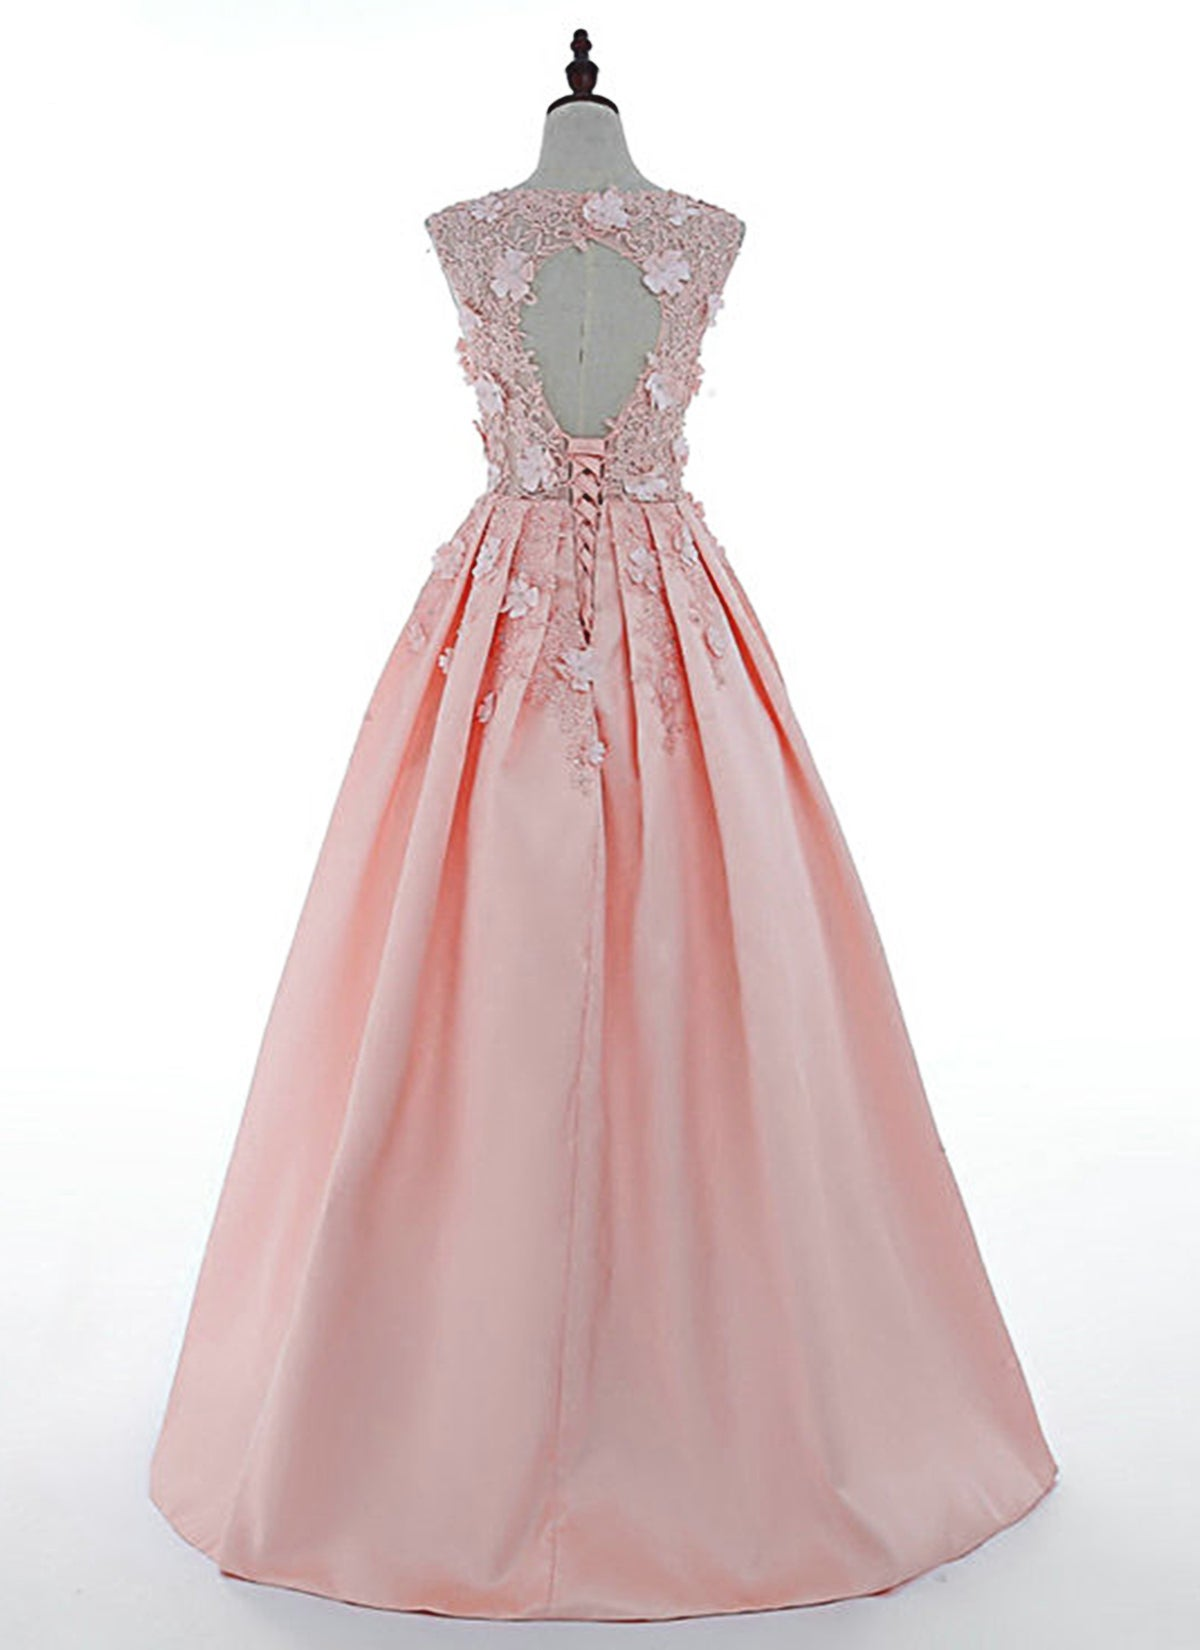 Elegant Pink Satin with Flowers Long Party Dress, Pink Prom Dress